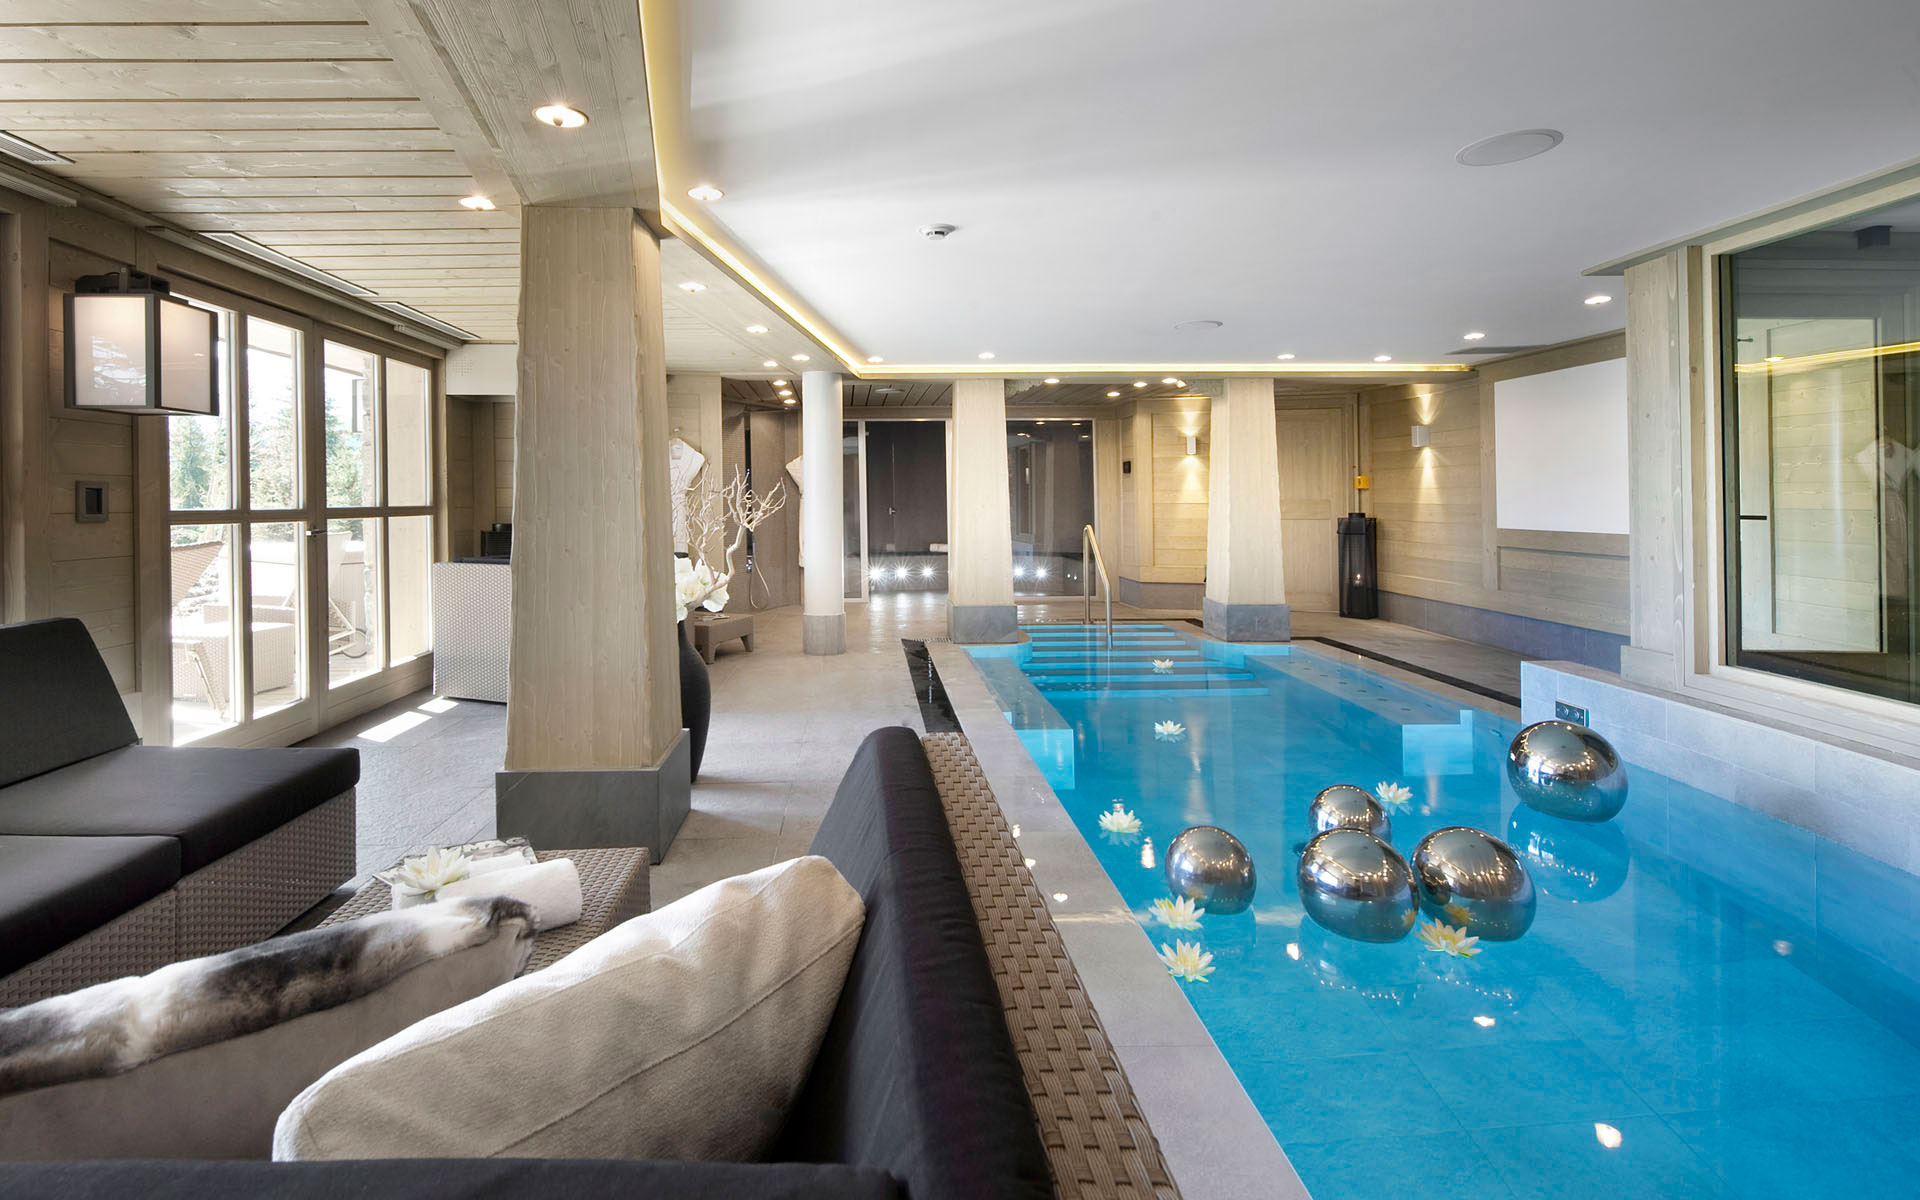 Indoor Swimming Pool, Luxury Ski Chalet in Courchevel 1850, France